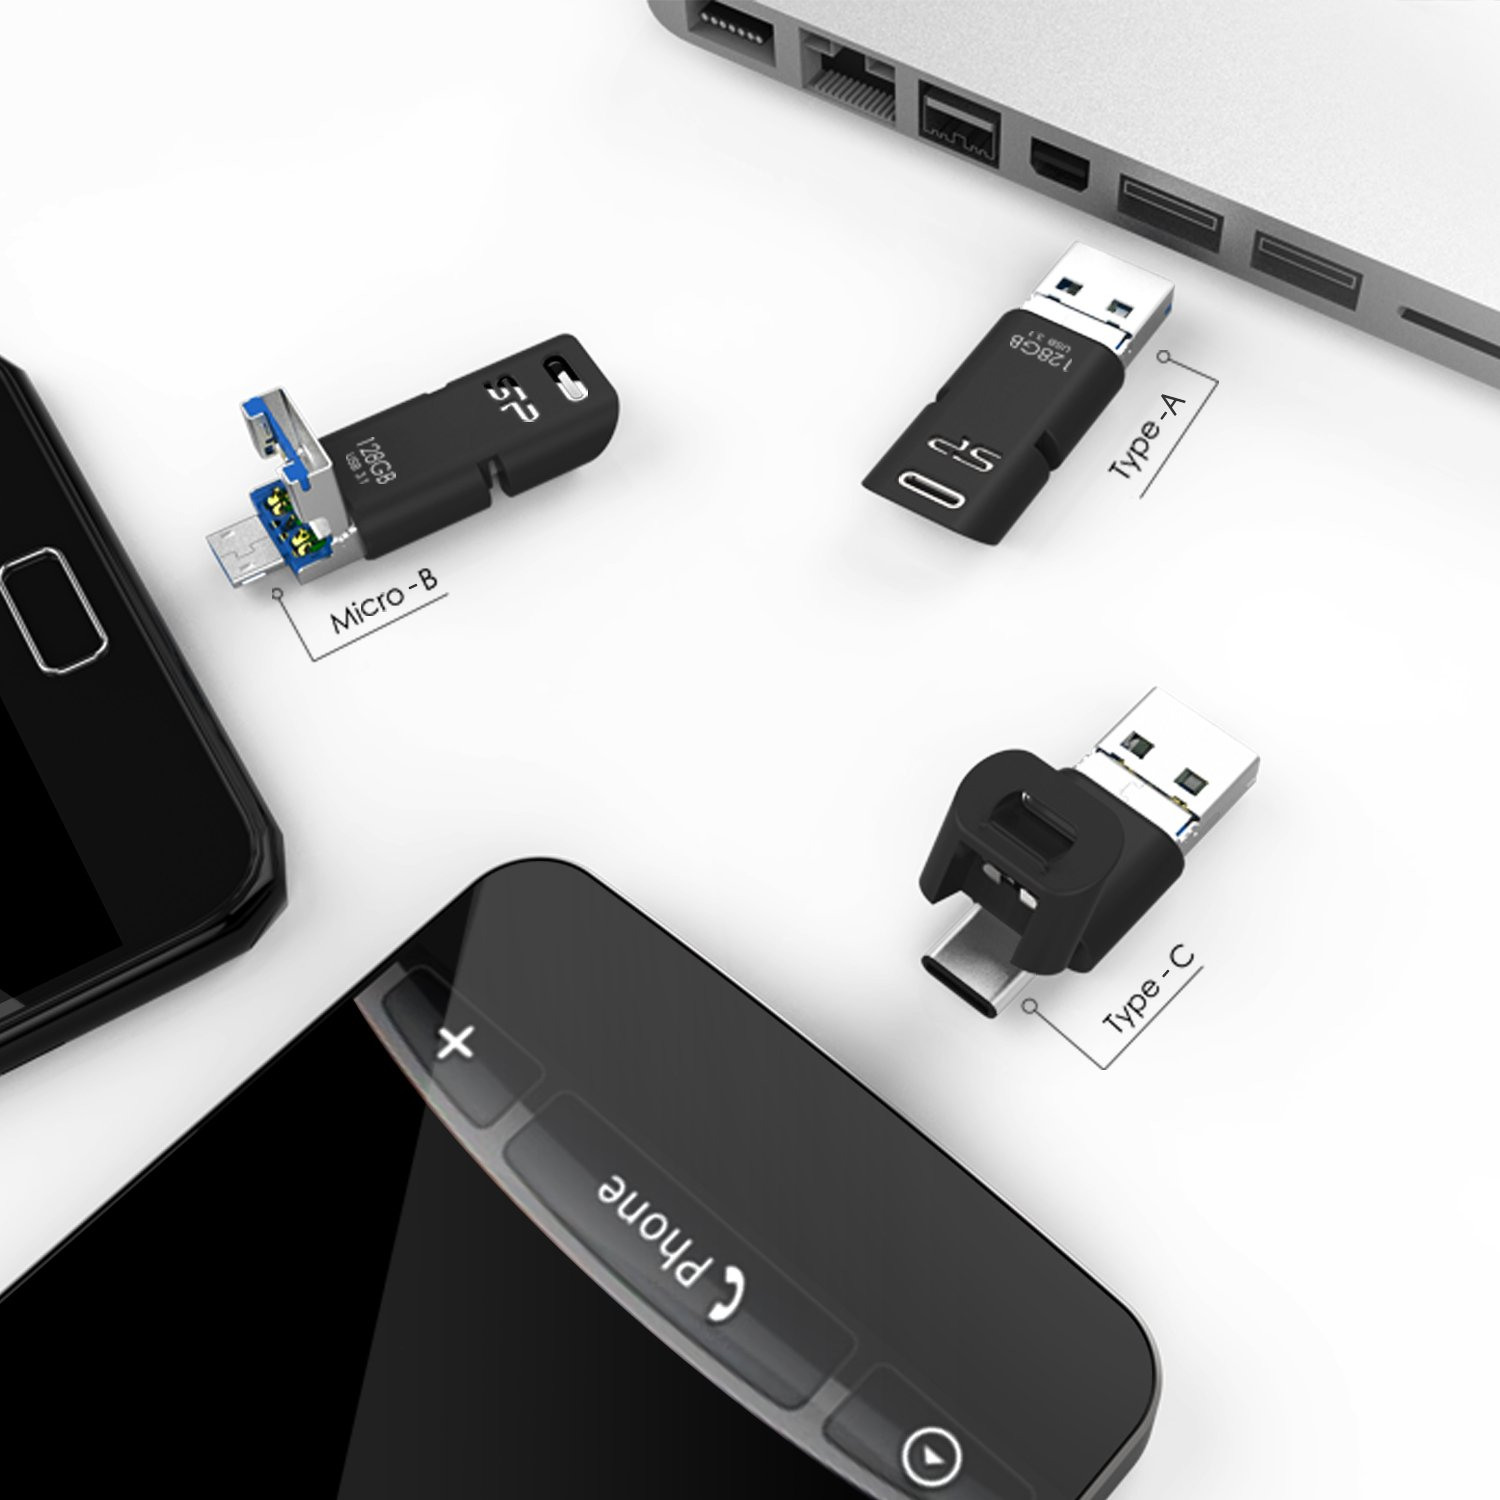 Silicon Power 64GB 3-in-1 USB 3.0 Flash Drive, USB A to Type-C Micro B PC, Mac, Smartphones Tablets by Silicon Power (Image #6)